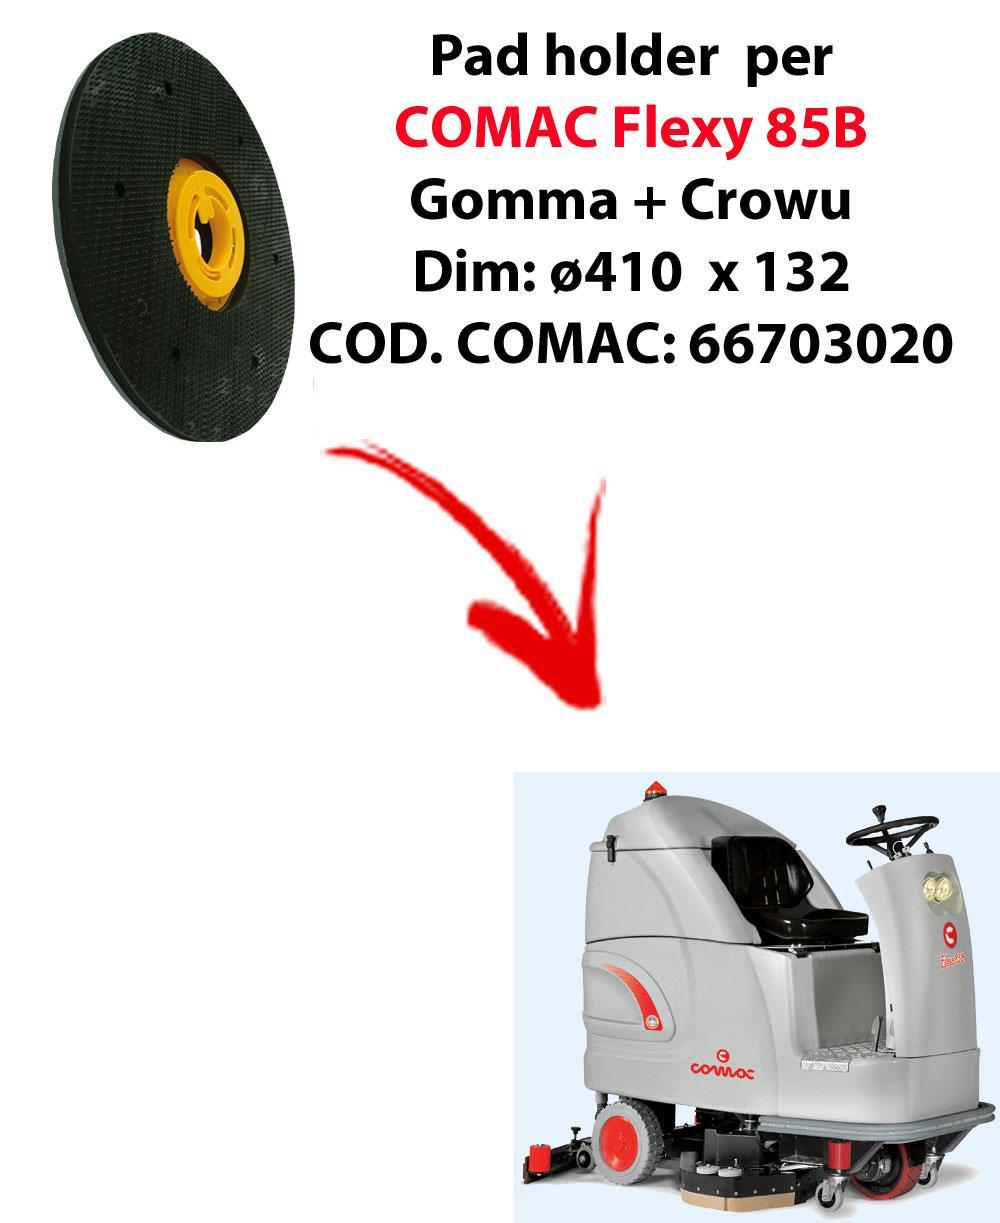 Discos de arrastre ( pad holder) para fregadora COMAC Flexy 85B.